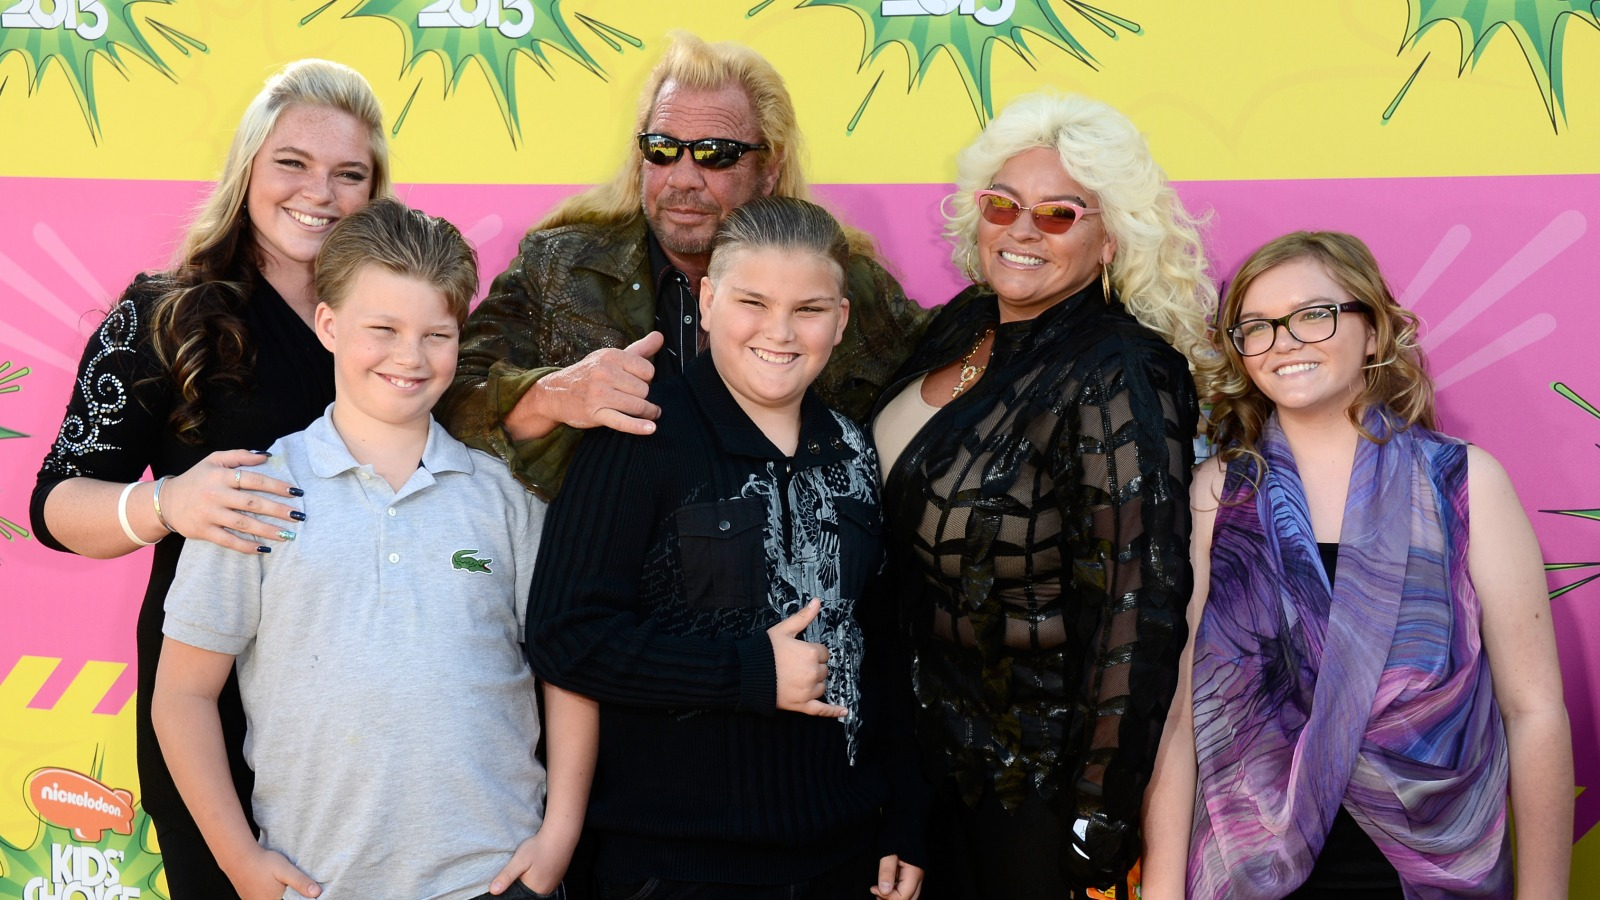 The real reason Dog the Bounty Hunter's show was canceled